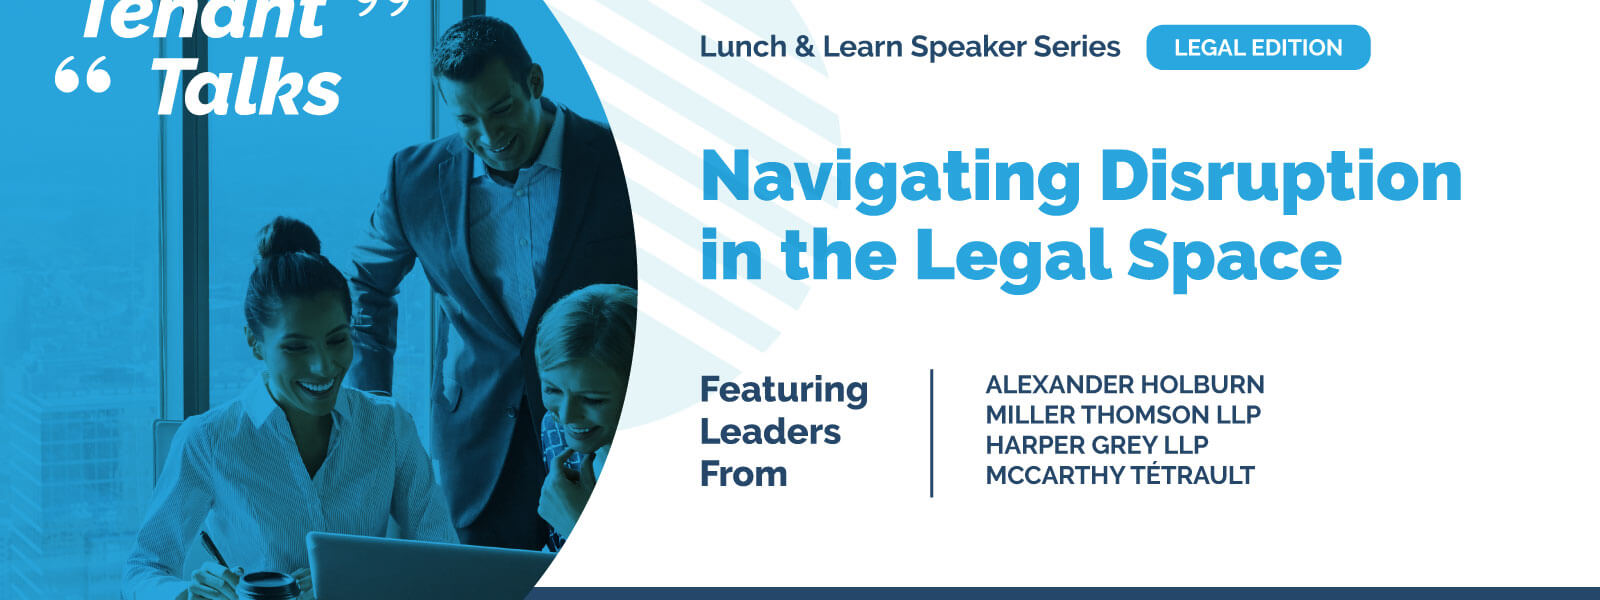 "Tenant Talks Launches Latest Lunch & Learn Event ""Navigating Disruption in the Legal Space"""